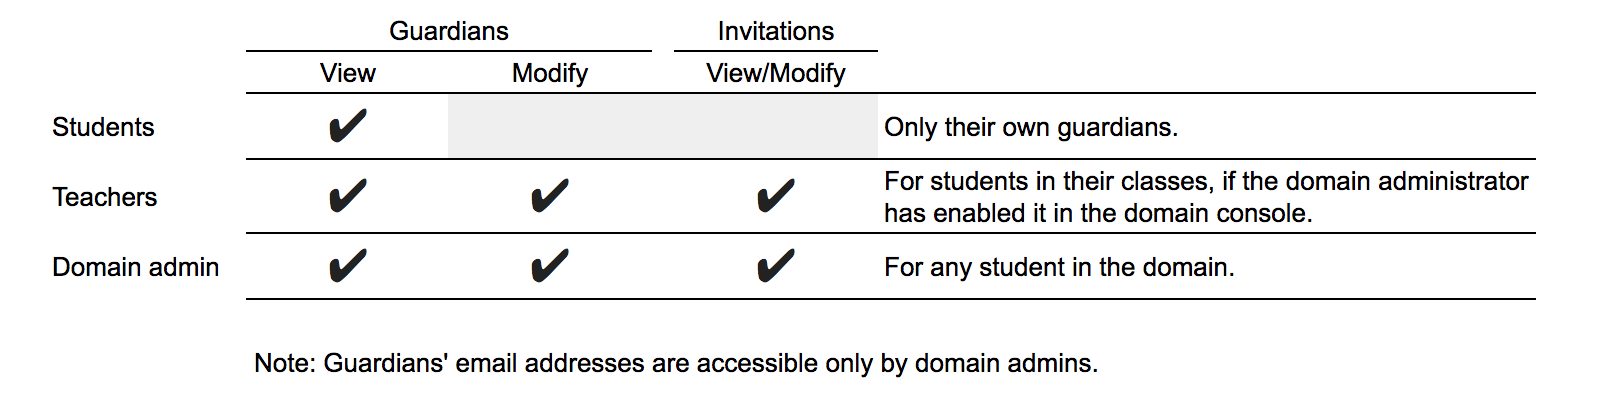 Table of guardian-related ACLs by user type